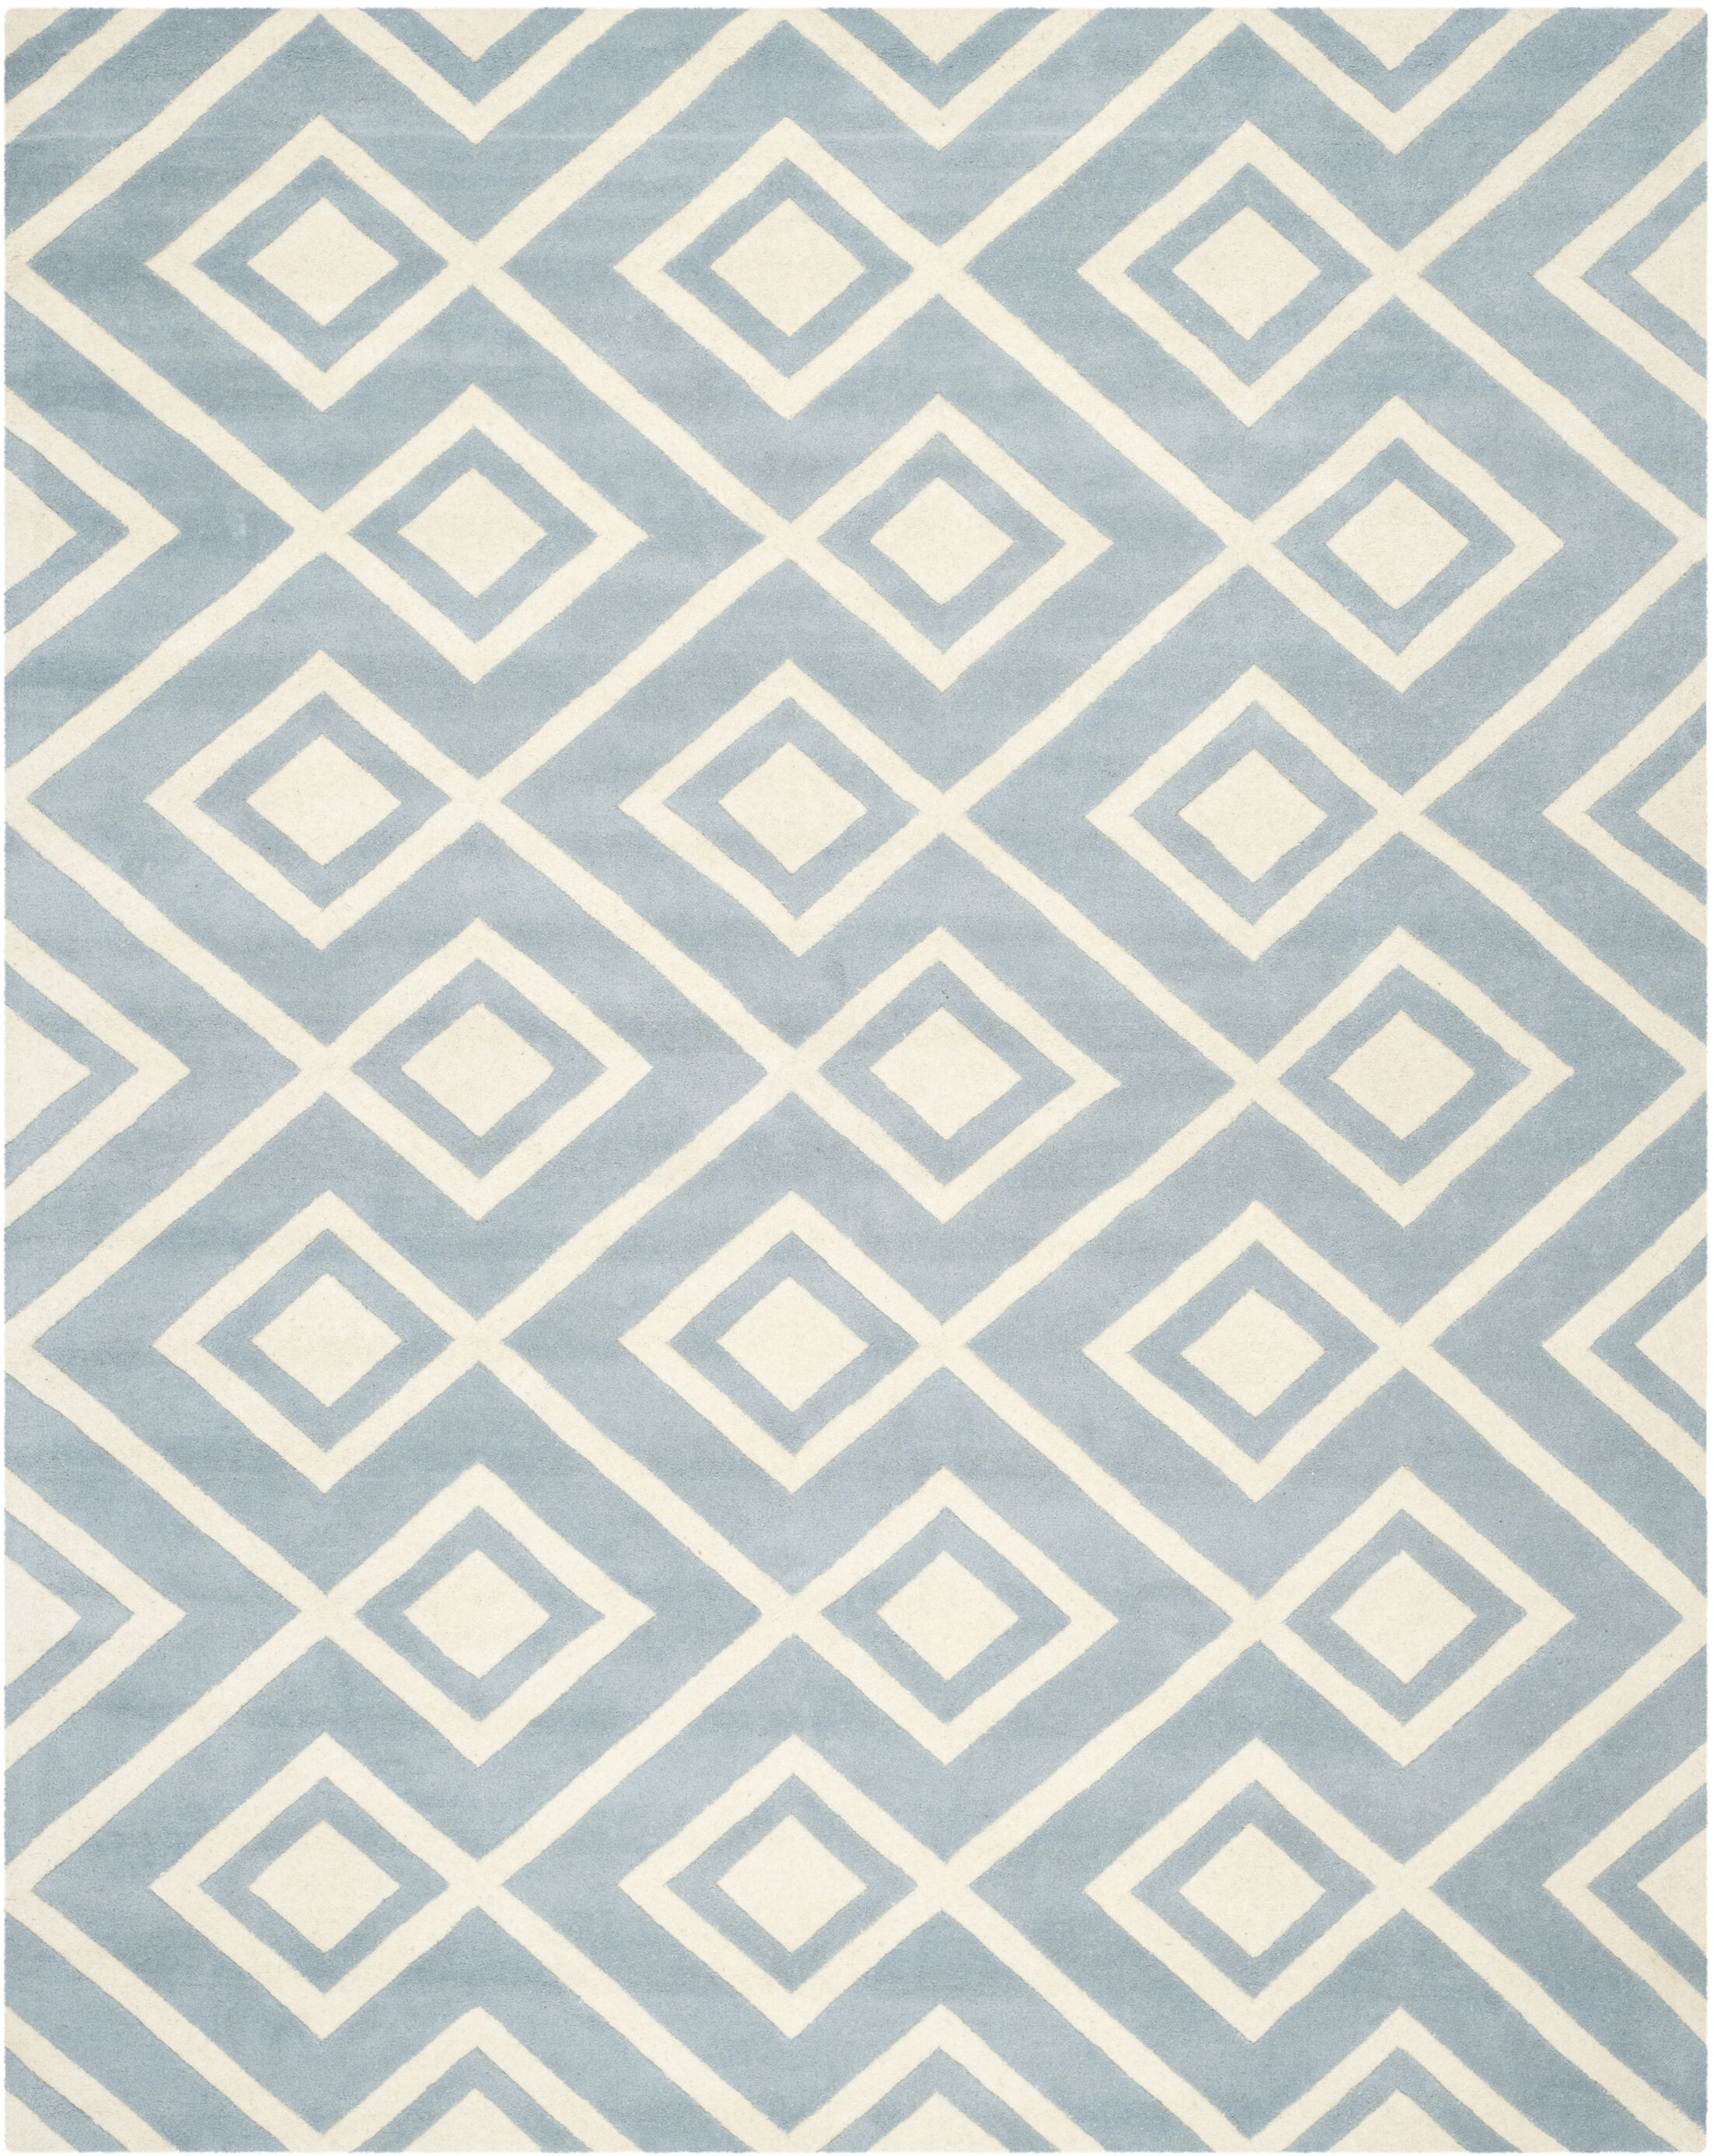 Wilkin Hand-Tufted Wool Blue/Ivory Area Rug Rug Size: Rectangle 8' x 10'